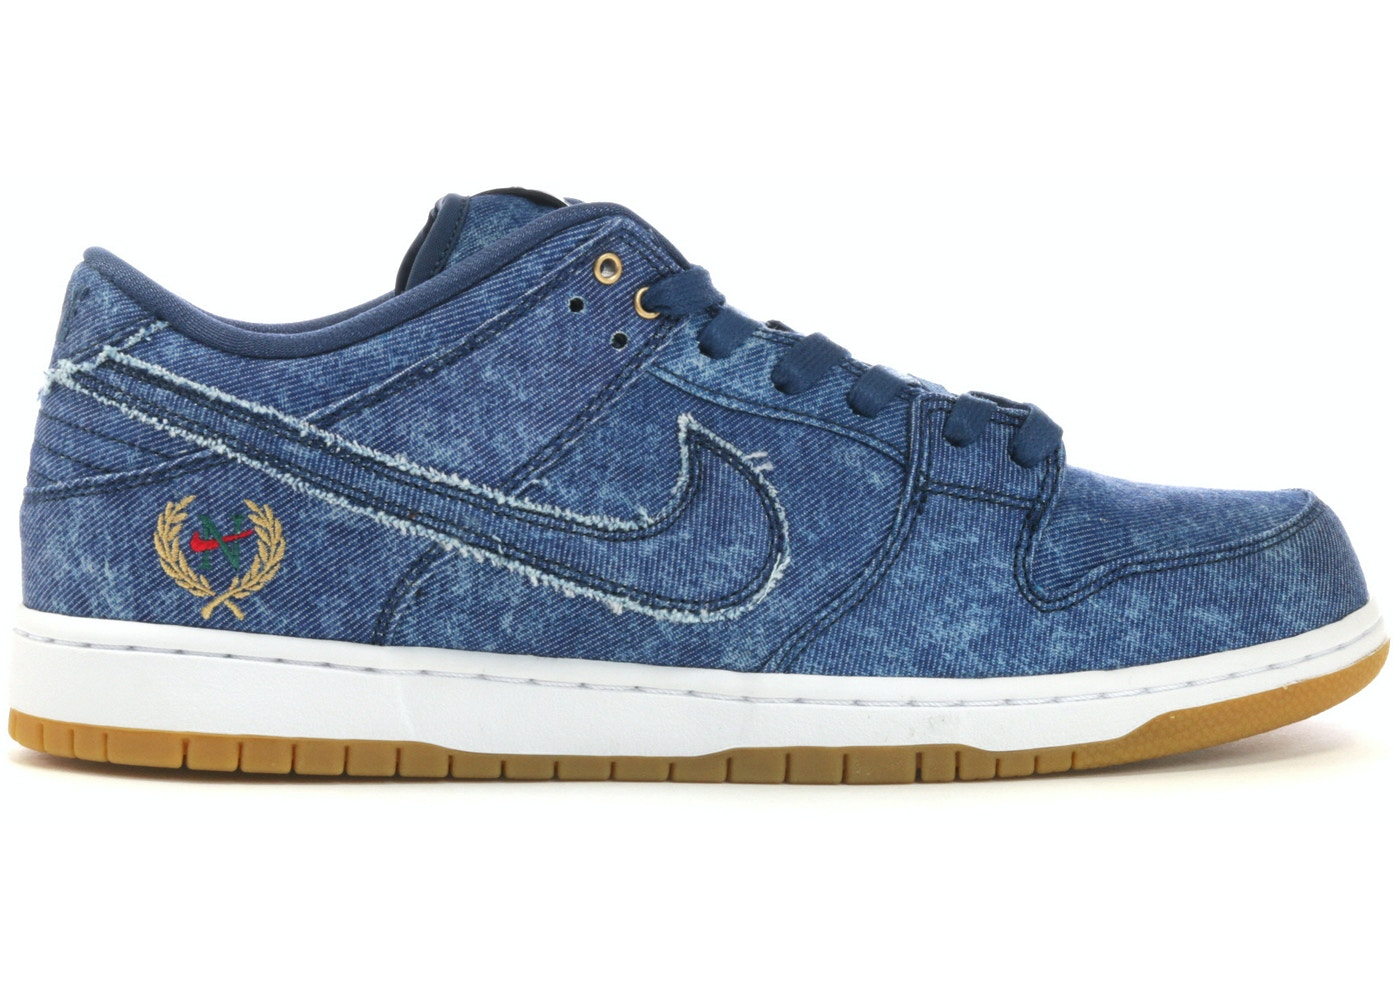 2a60628a609 Nike SB Dunk Low Rivals Pack (East) - 883232-441